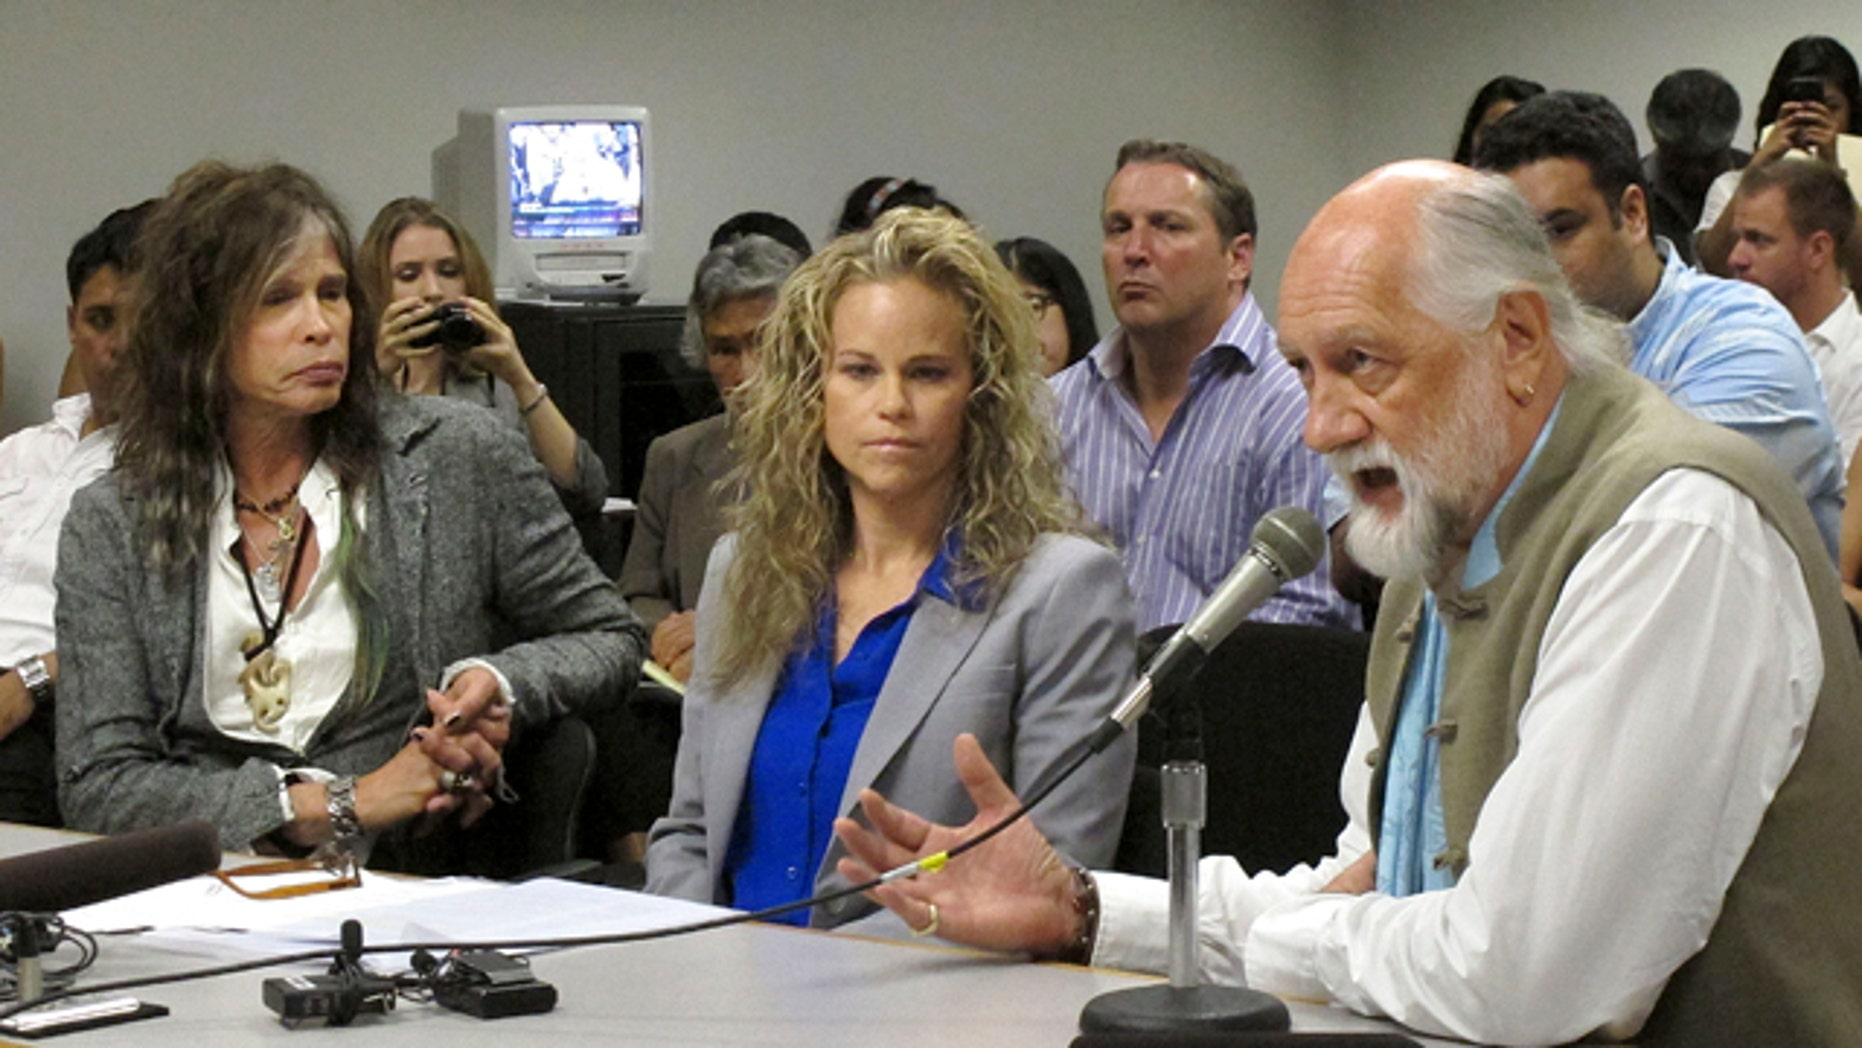 Feb. 8, 2013: Aerosmith lead singer Steven Tyler, left, his attorney Dina LaPolt, center, listen as Fleetwood Mac drummer Mick Fleetwood testifies on celebrity privacy during a hearing at the Hawaii Capitol in Honolulu.